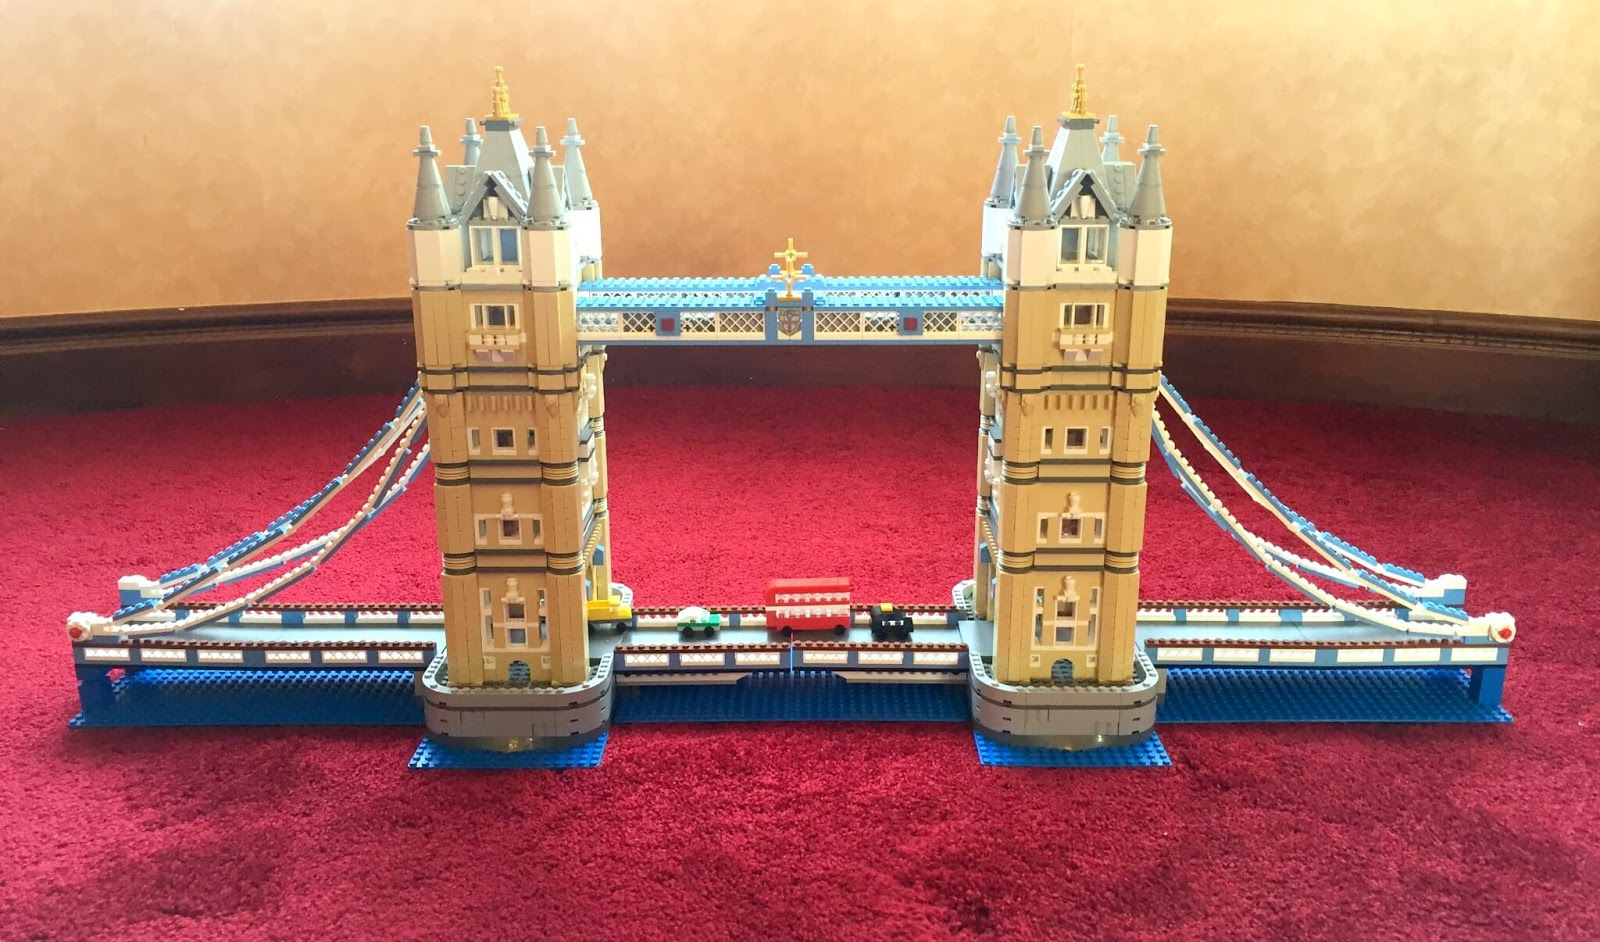 Building Lego Tower Bridge 10214 | The finished build.